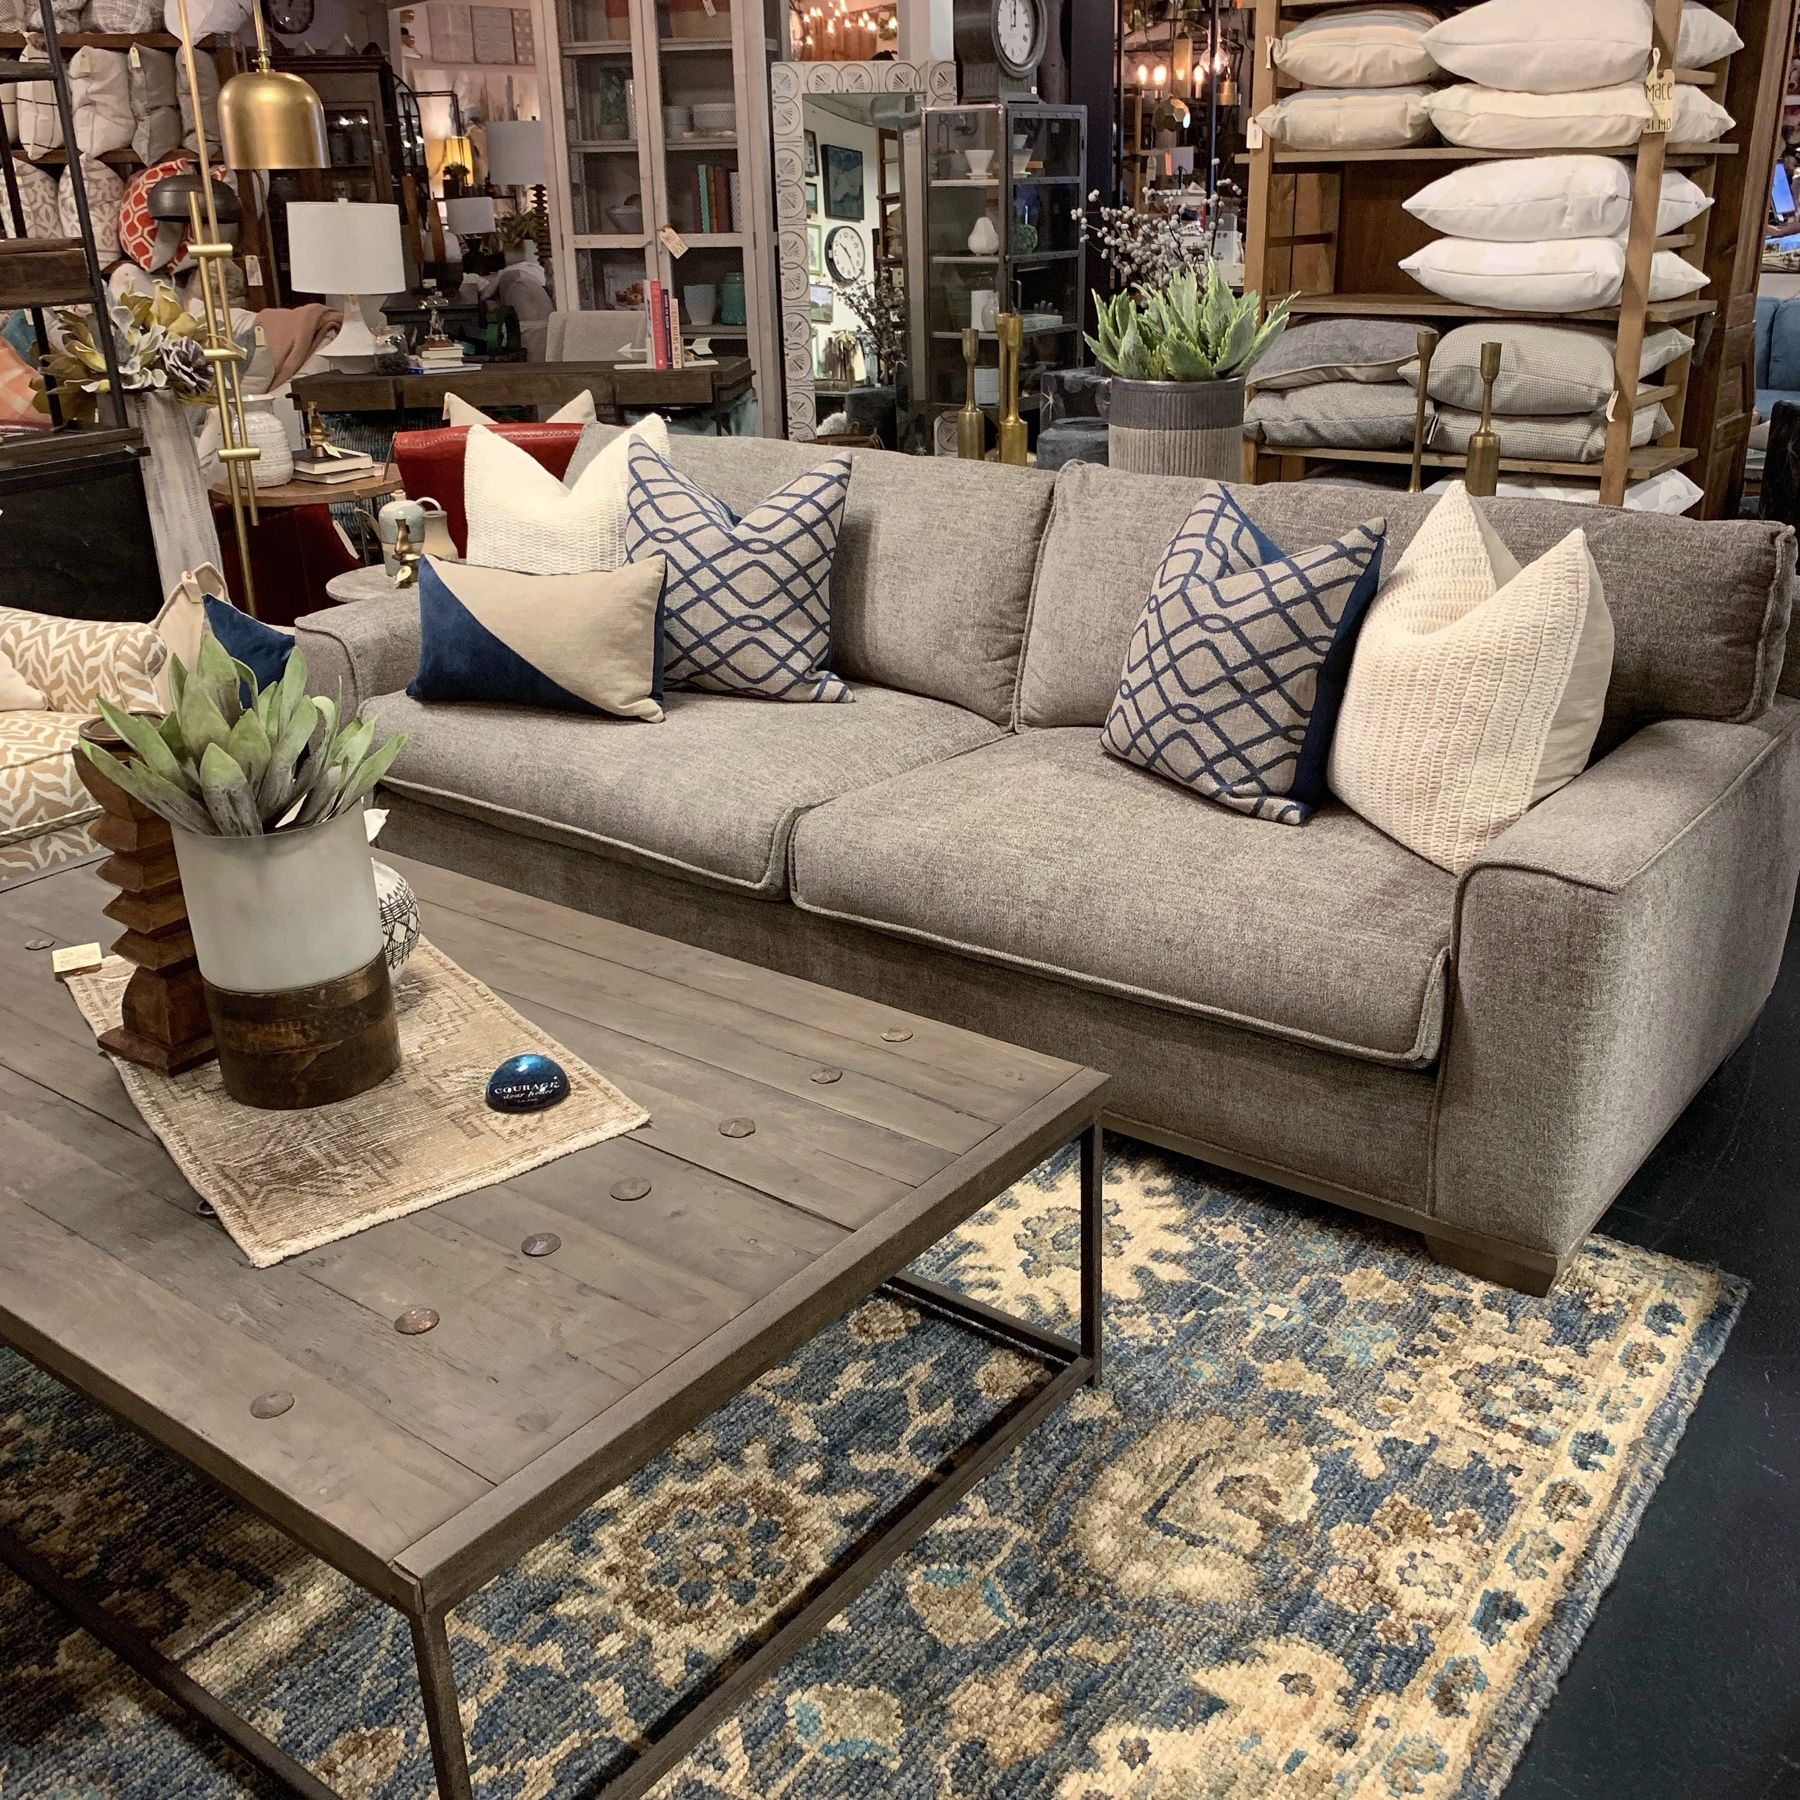 The Finnick Sofa Feels Like A Dream Wrapped In This Lush Velvety Gray Fabric Coffee Table Pallet Coffee Table Outdoor Sofa